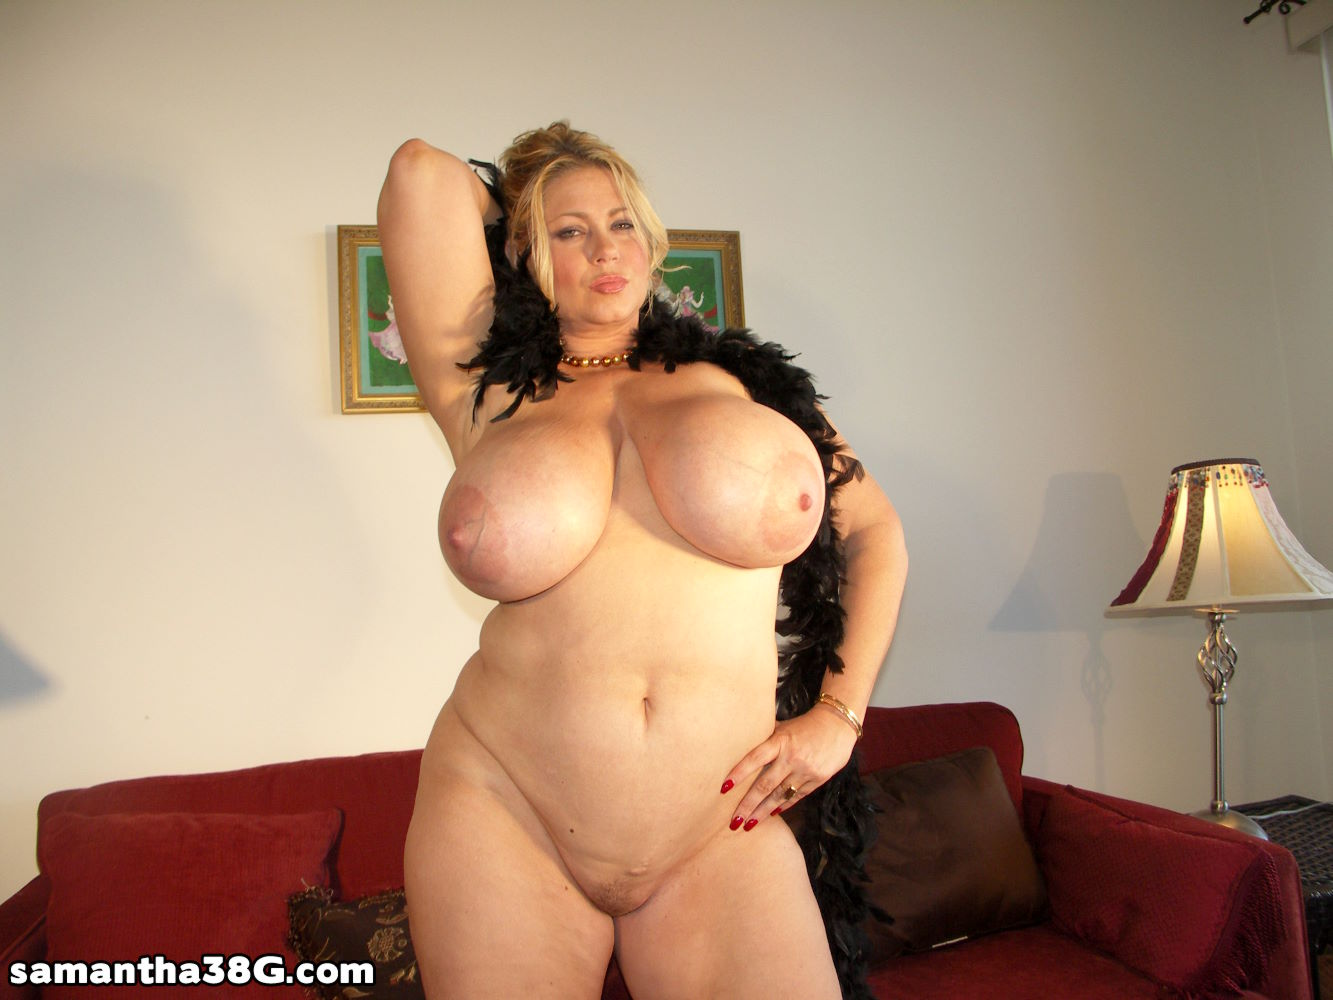 pics of the biggest tits ever